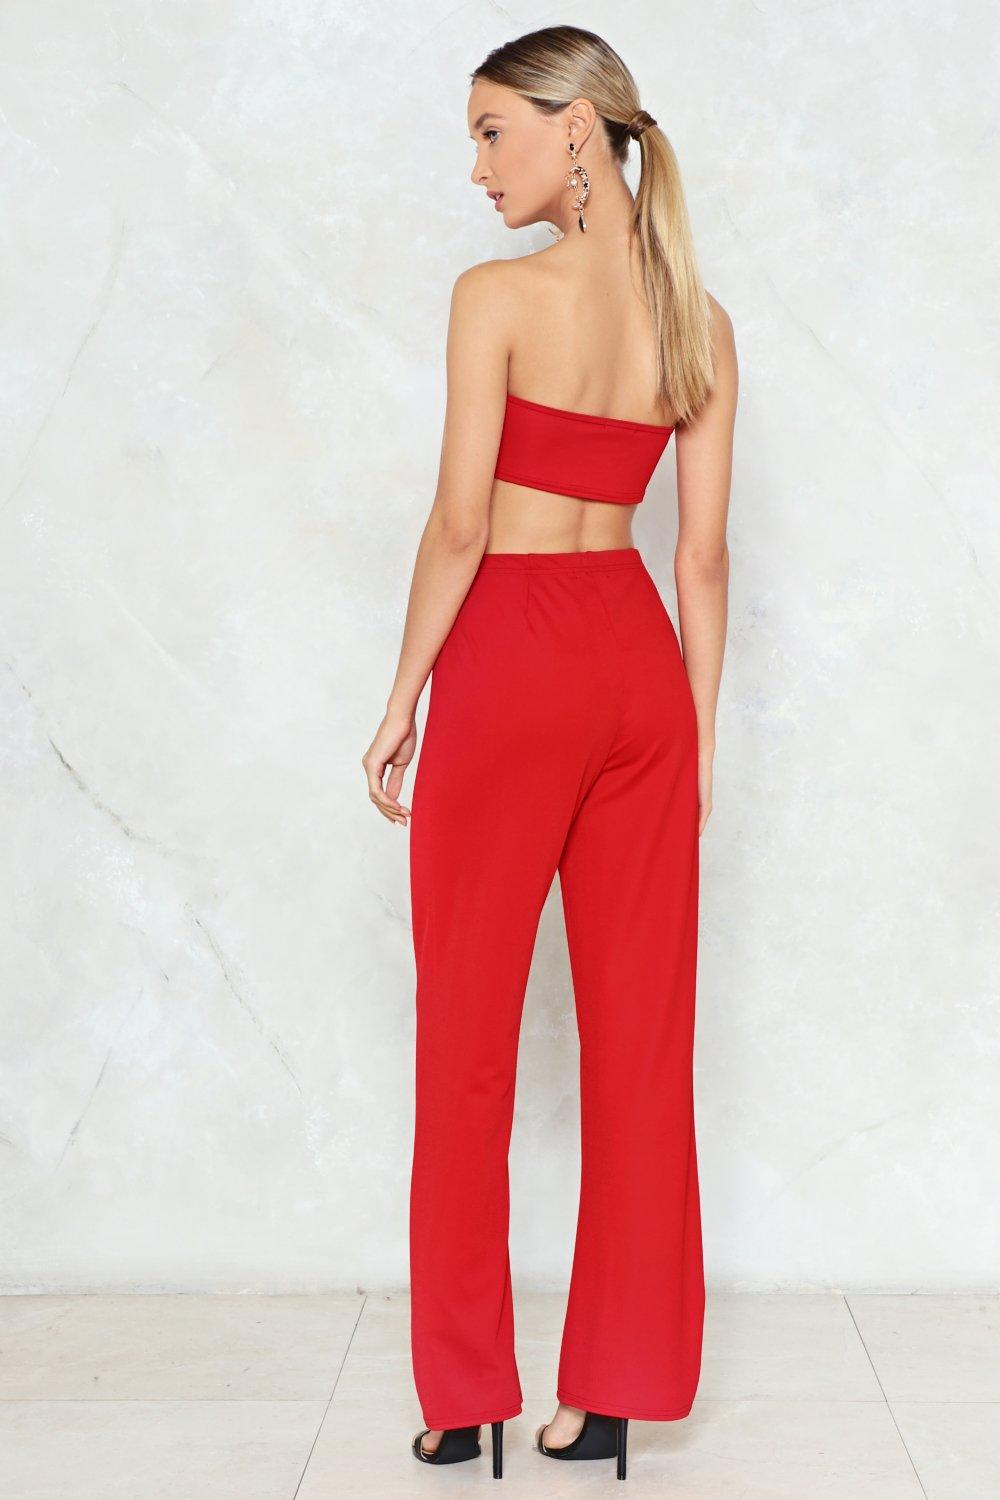 ae5e998b36 The Perfect Fit Bandeau Top and Pants Set | Shop Clothes at Nasty Gal!